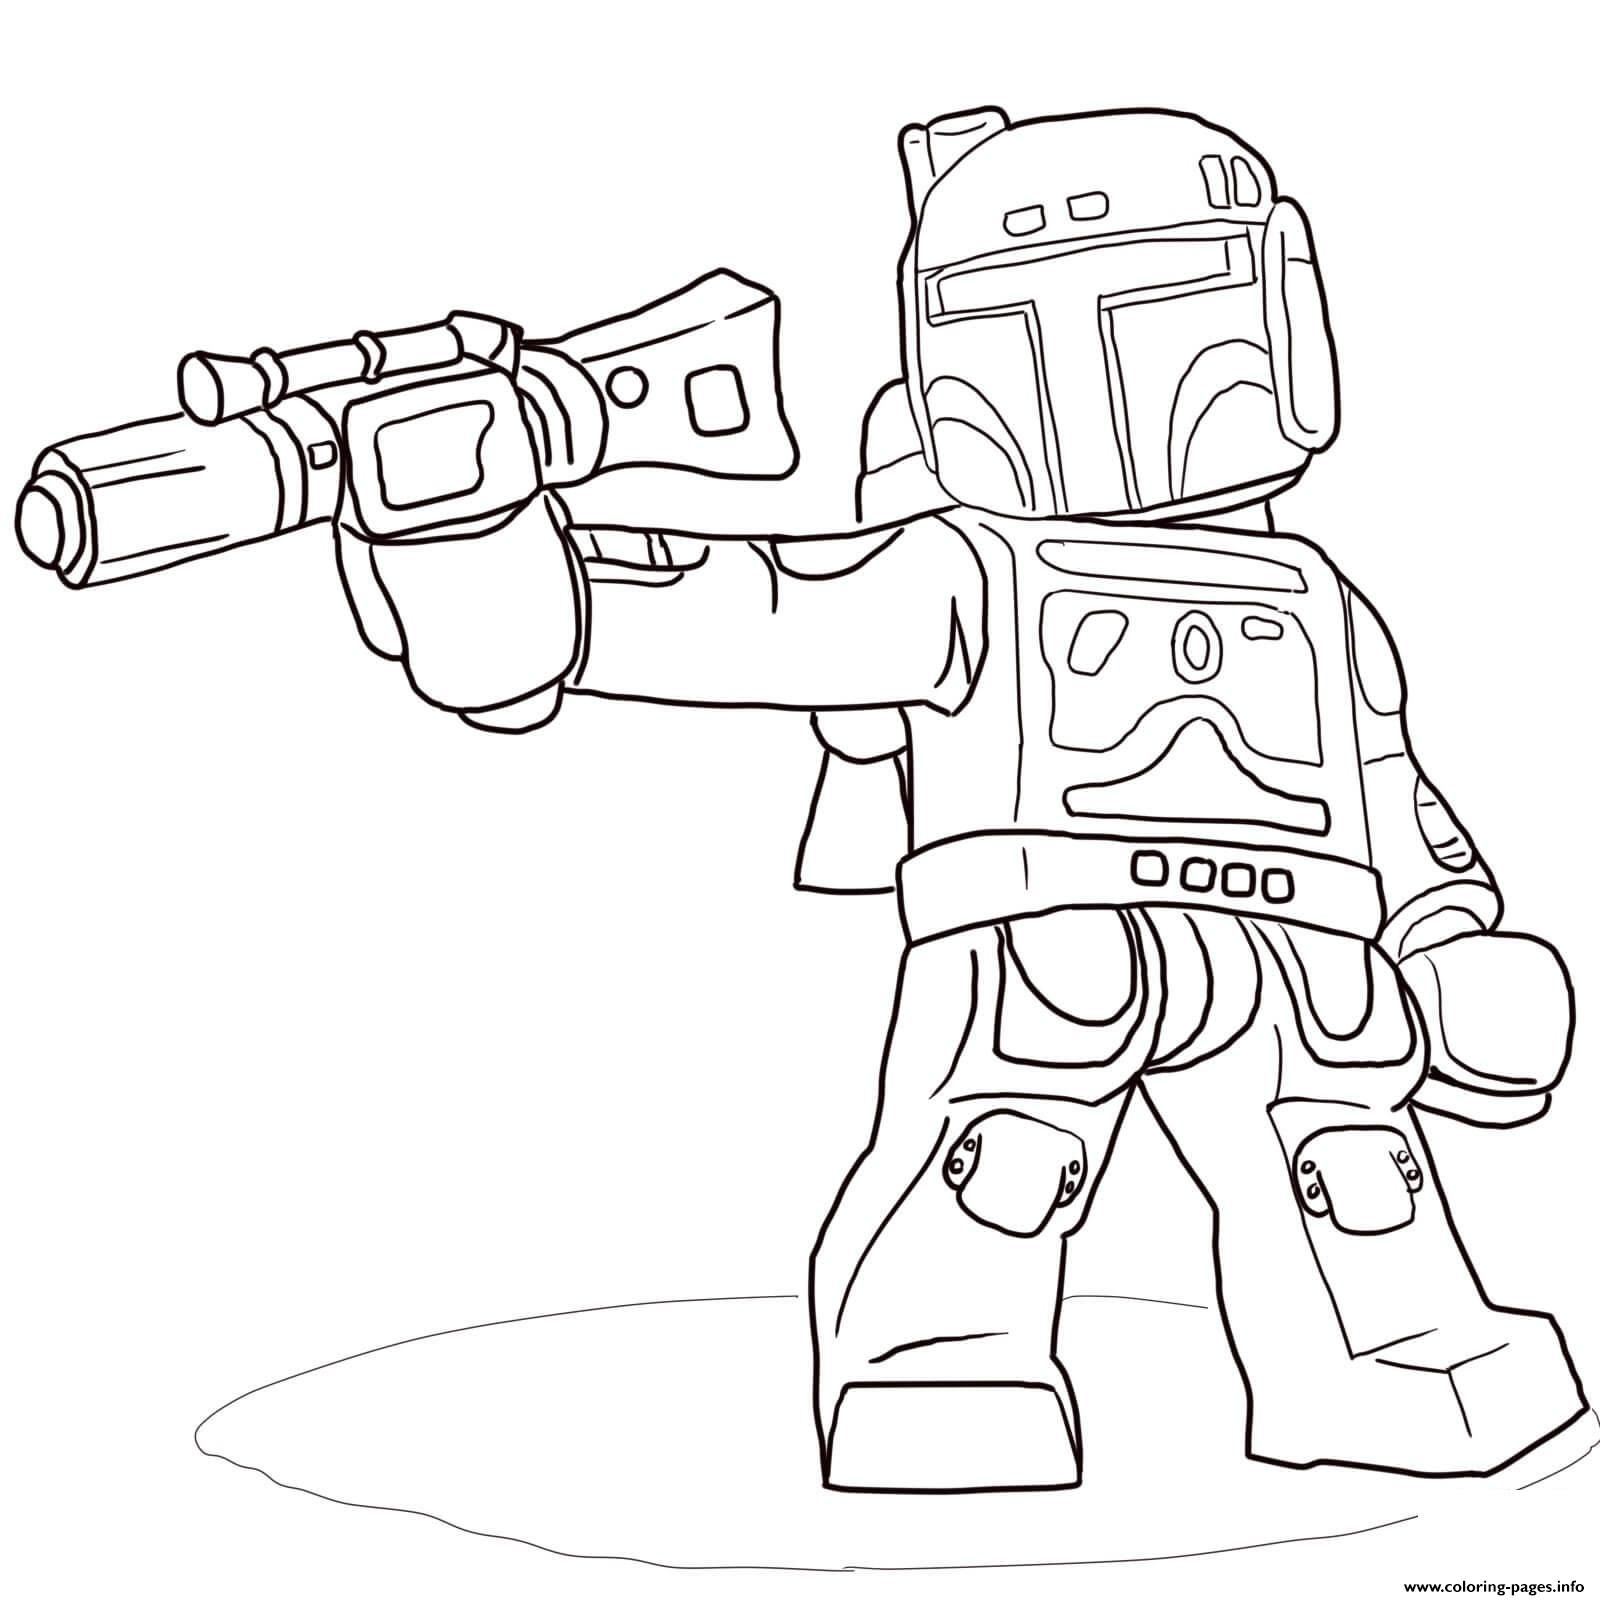 Lego Star Wars Boba Fett Coloring Pages Printable Collection ...